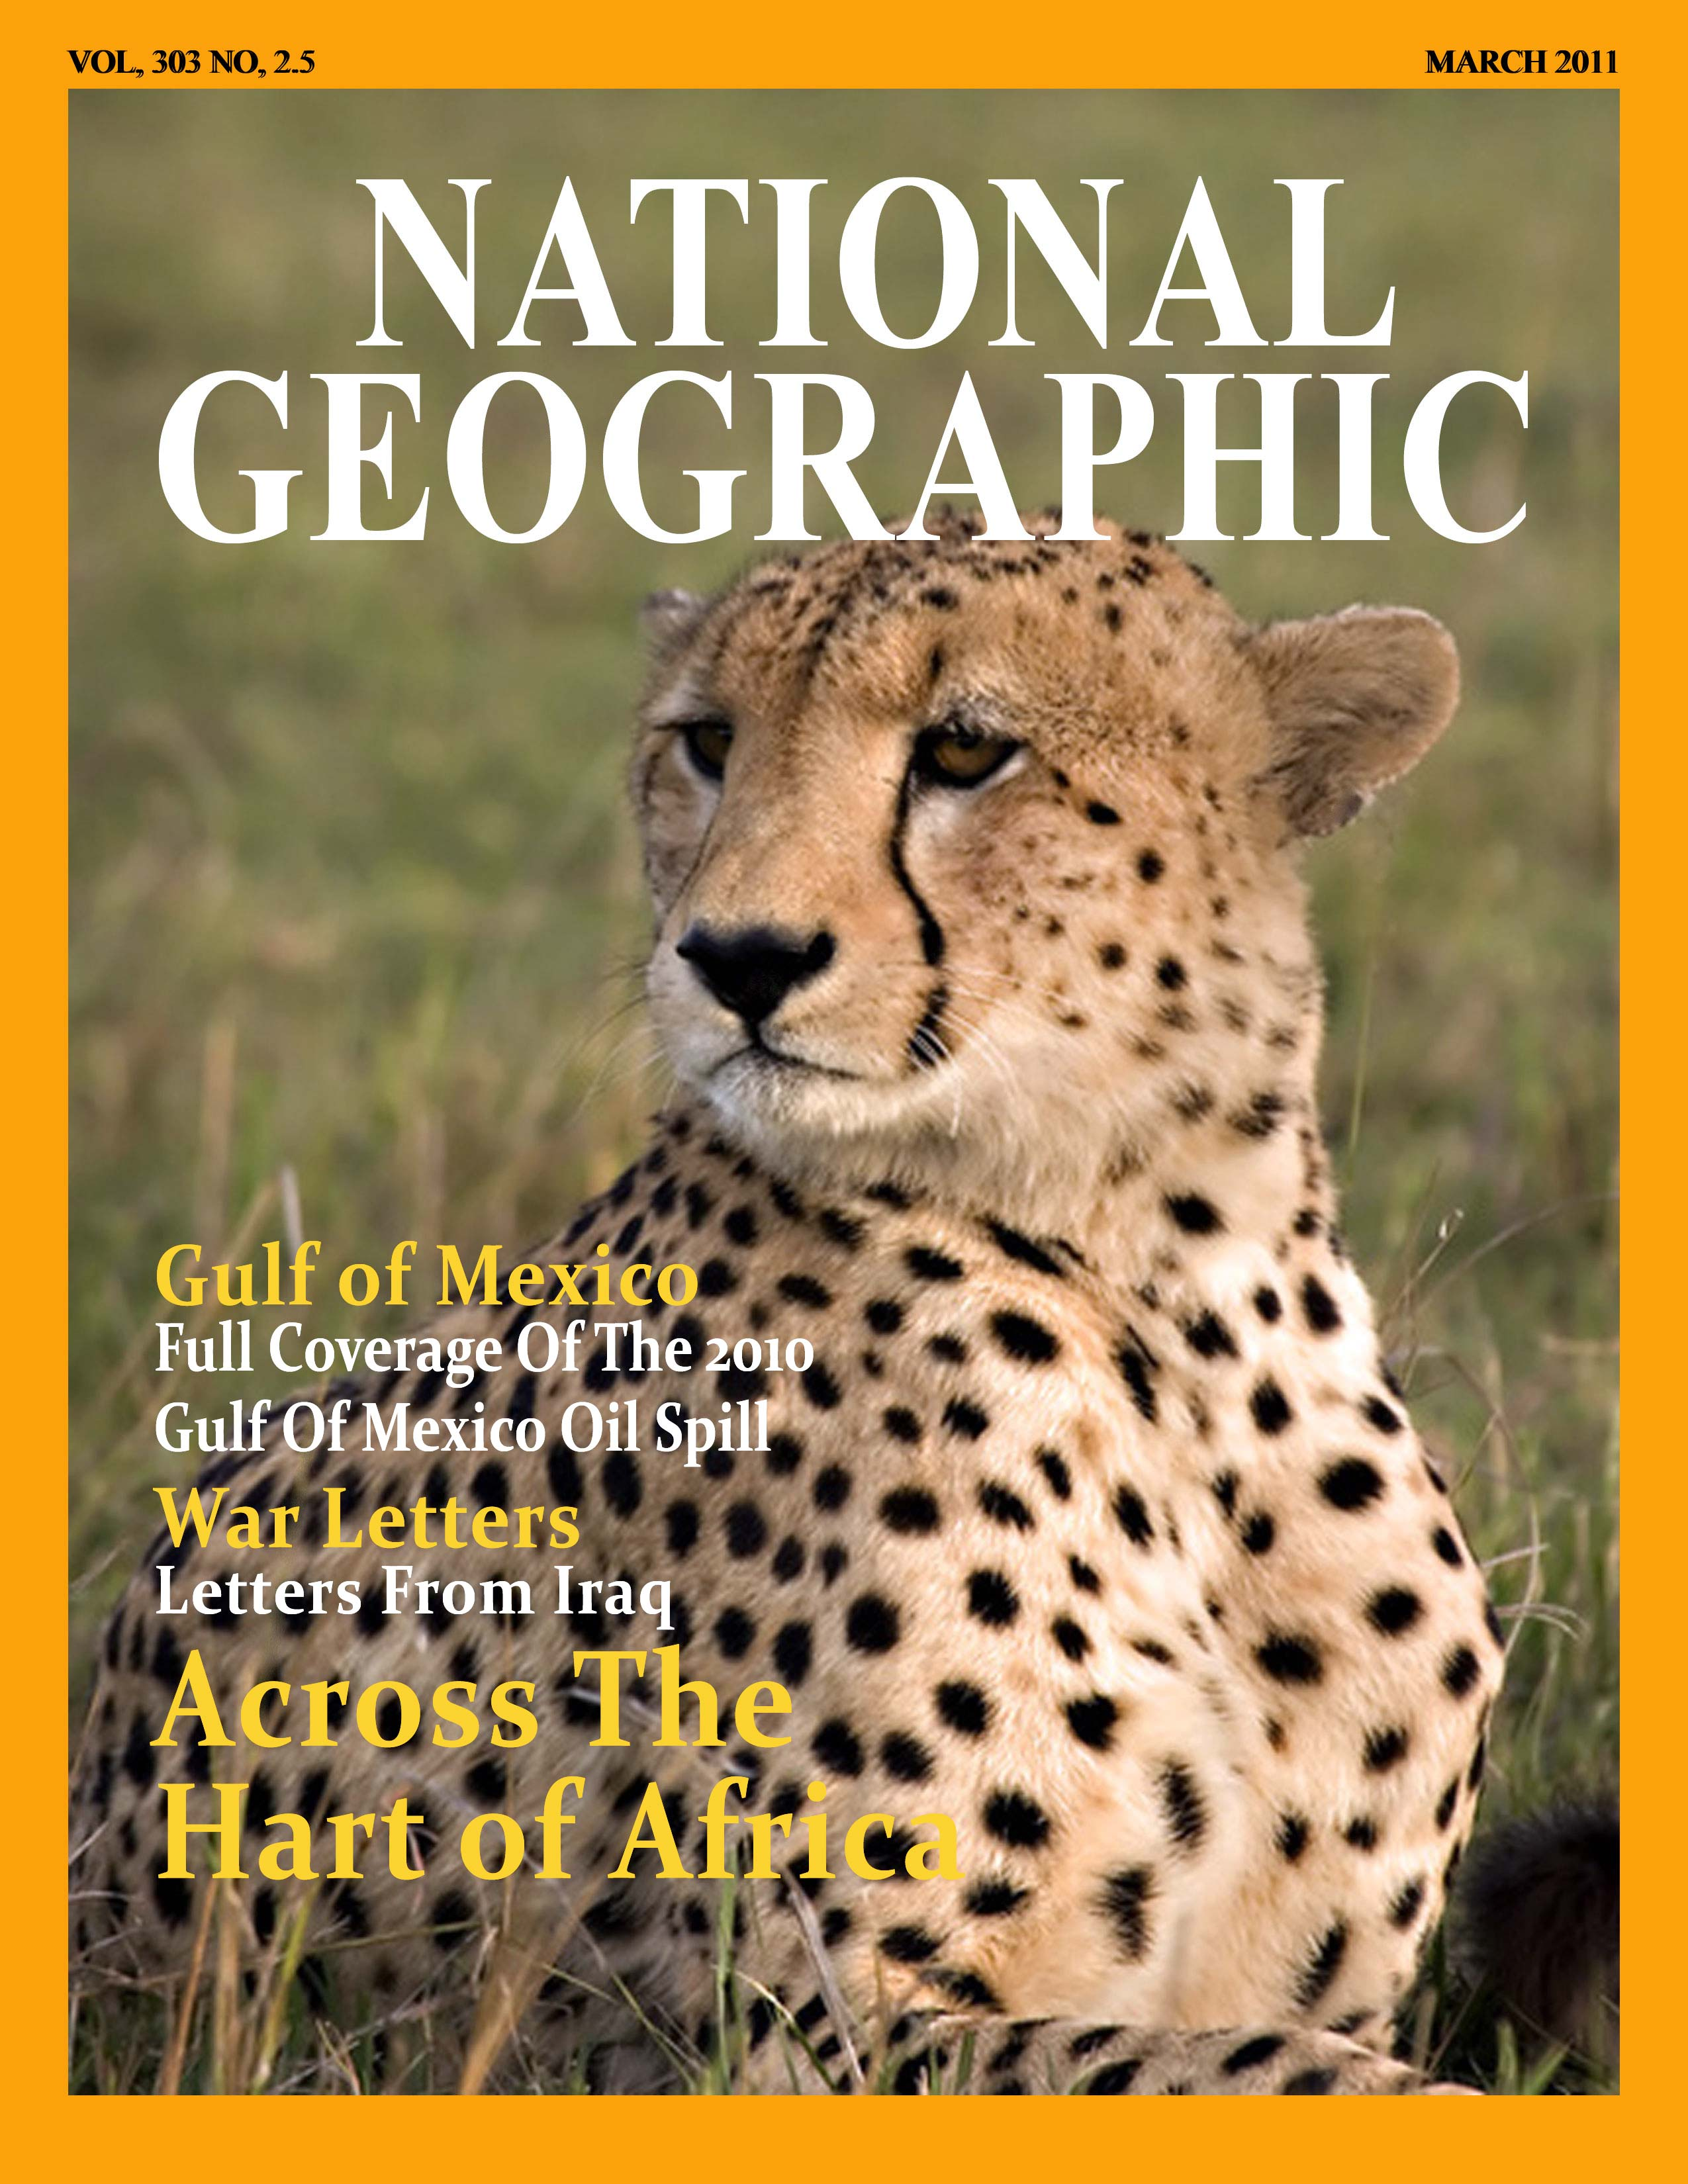 Cover of National Geographic with cheetah.